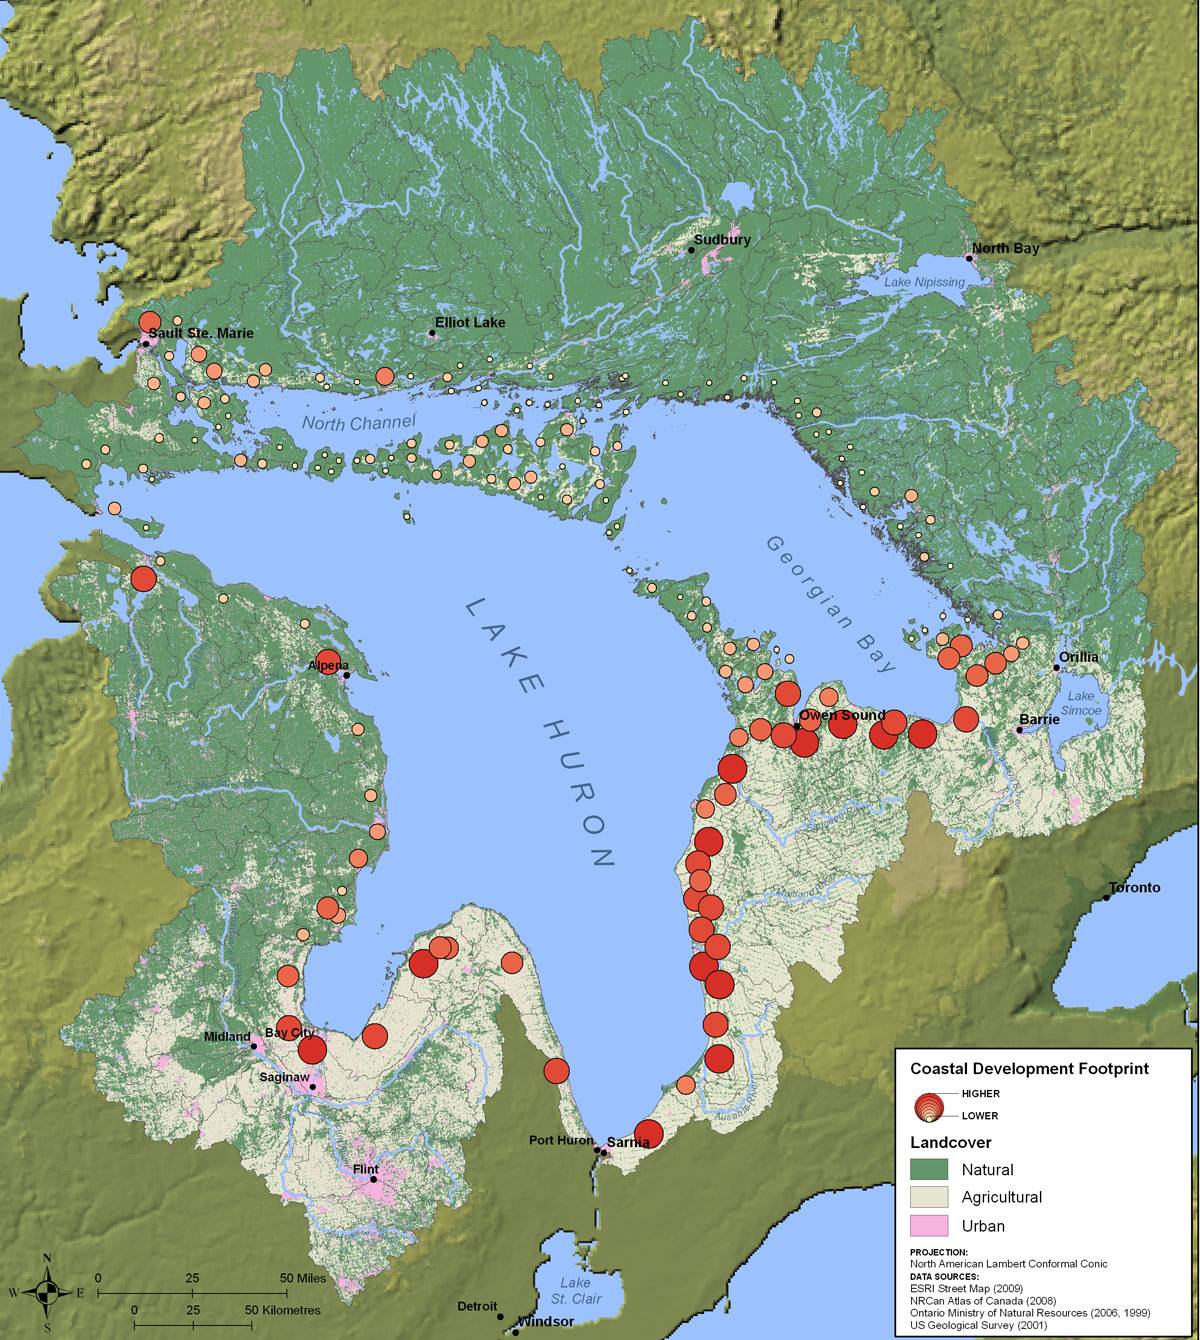 About the Lake Huron Watershed